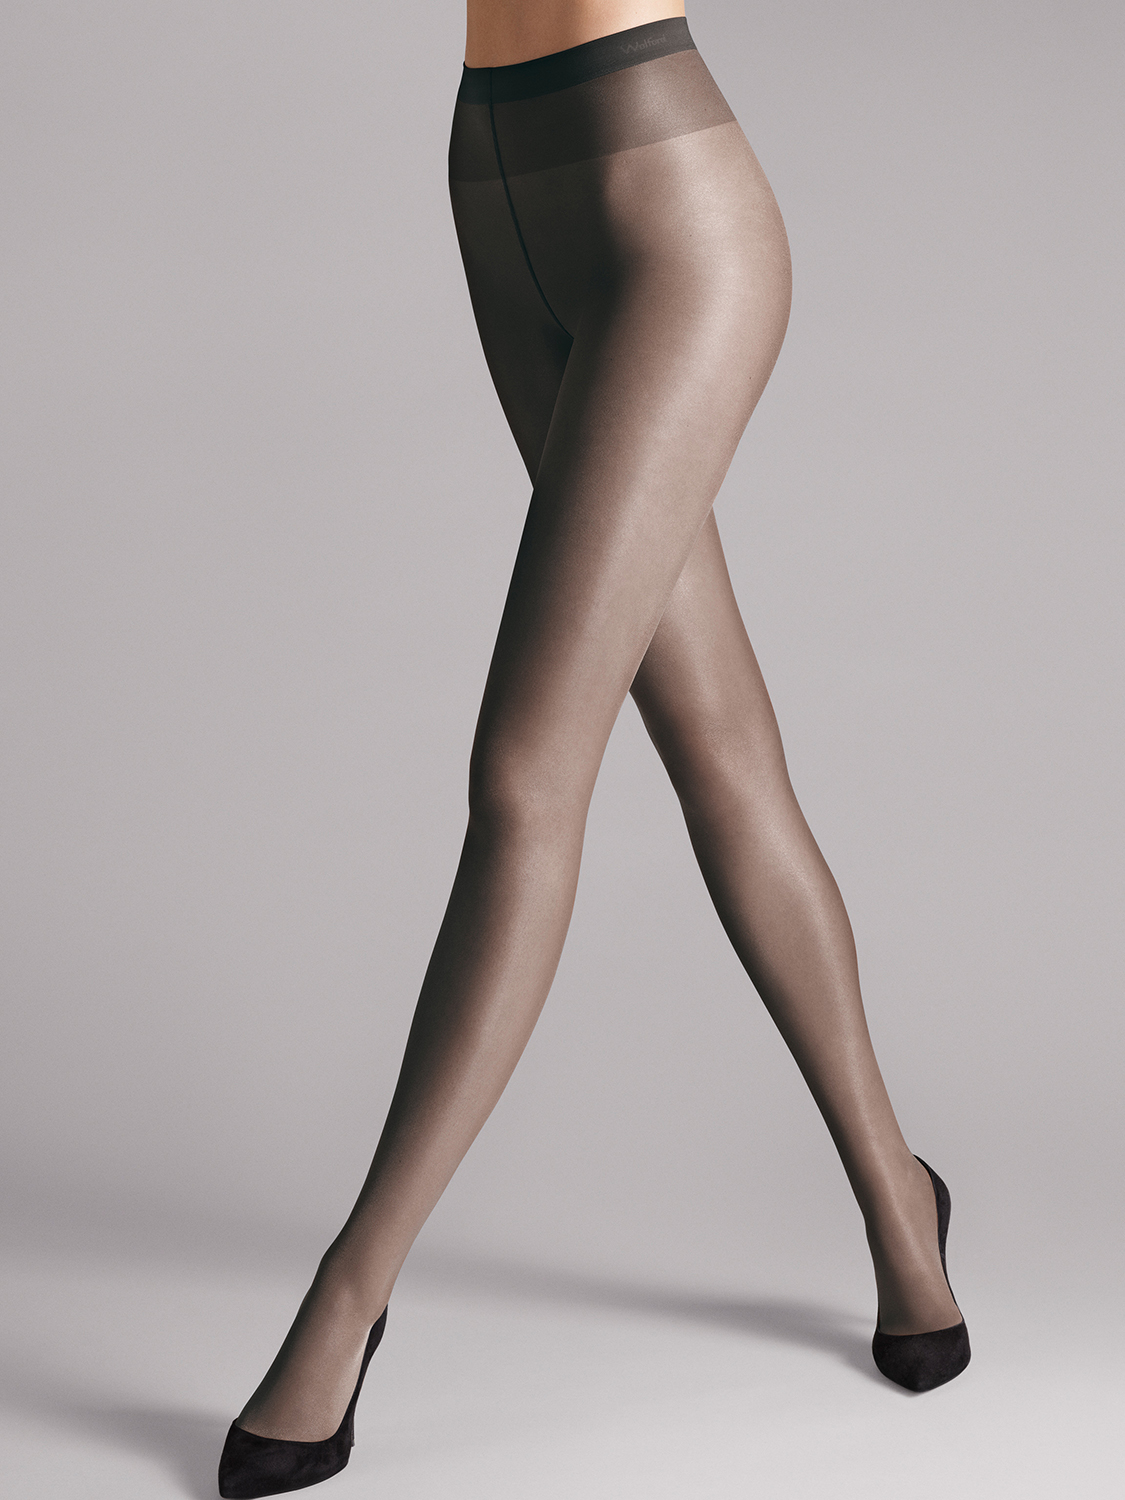 Колготы satin touch 20 tights фото